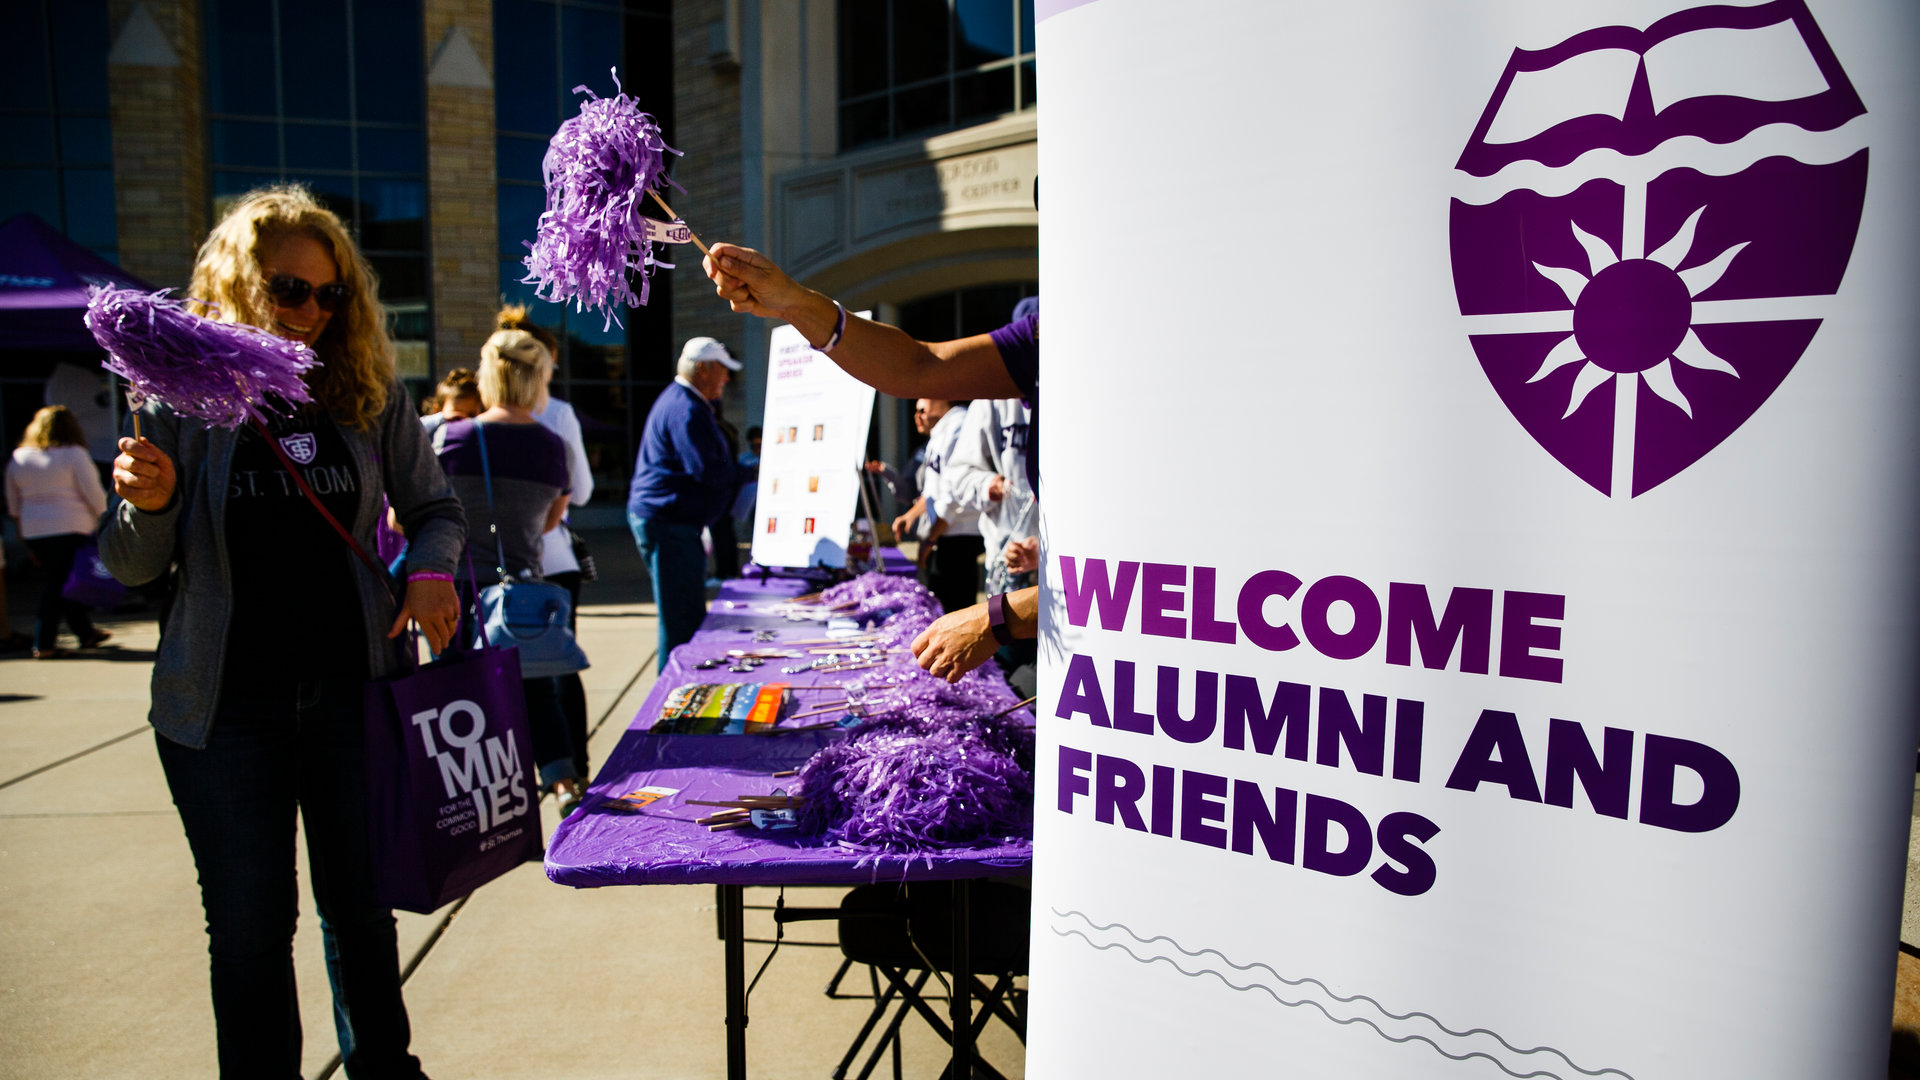 people stand by a welcome sign during an alumni event